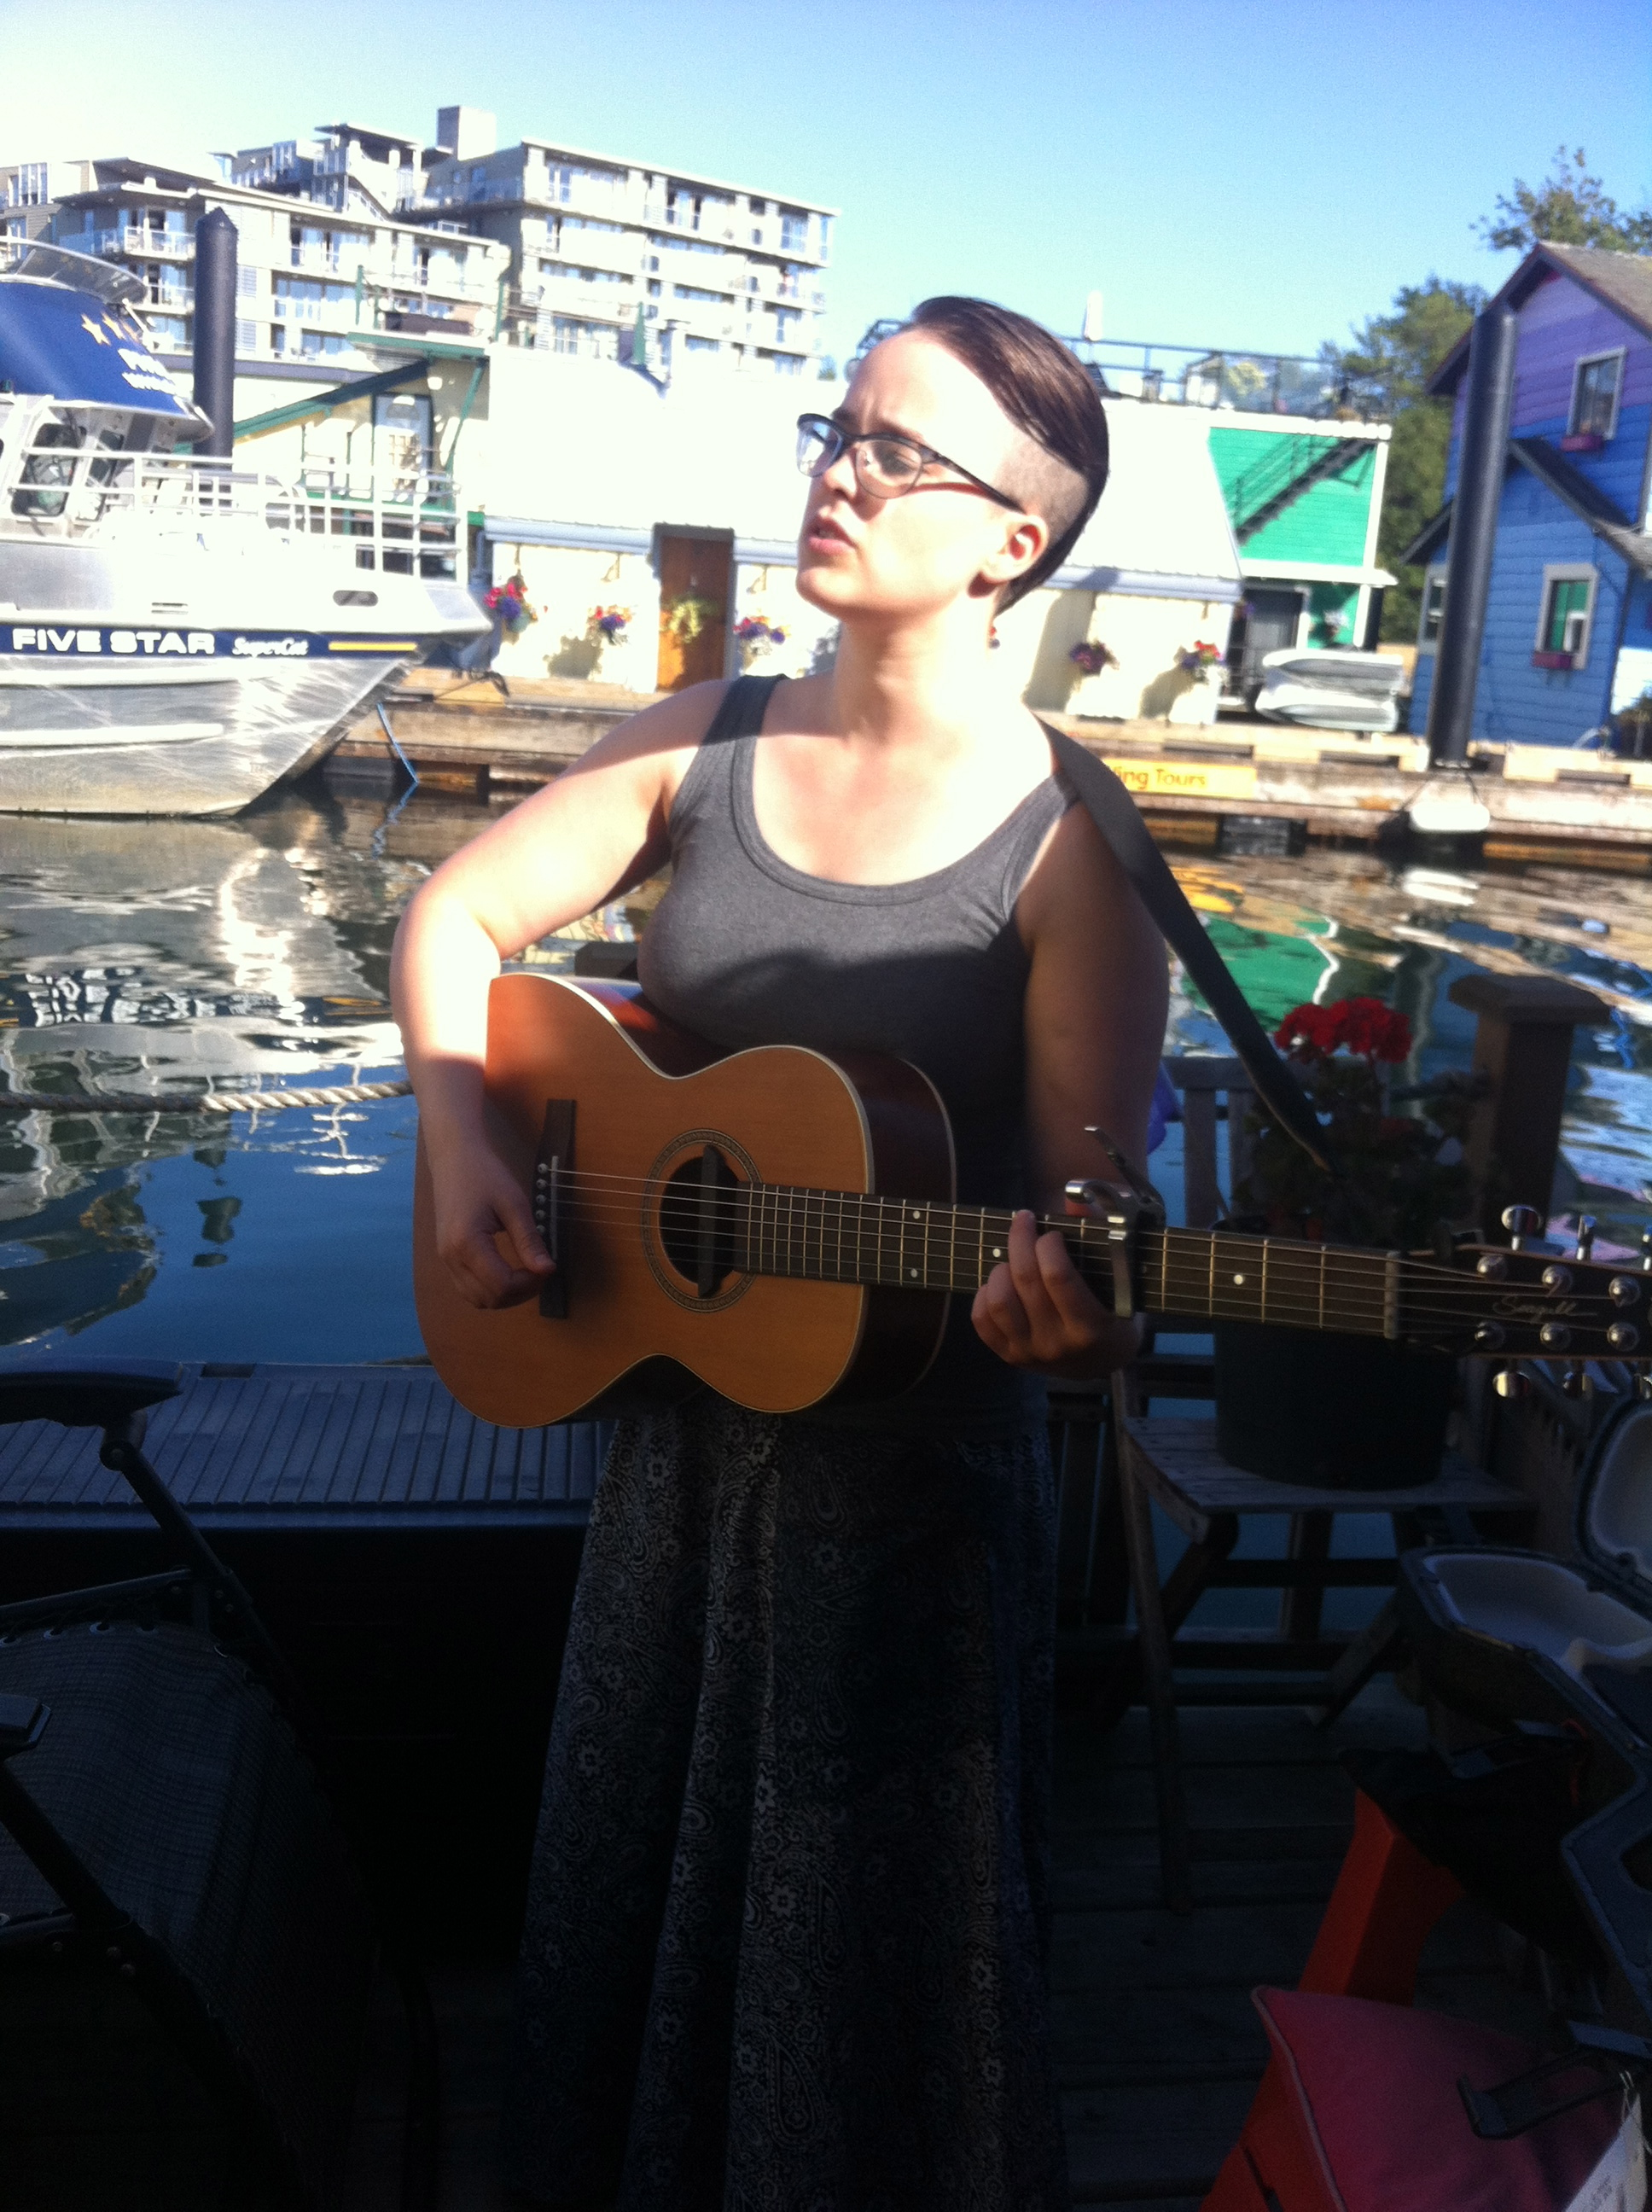 Singing on a floating house in Victoria! Floating houses are the best!!!